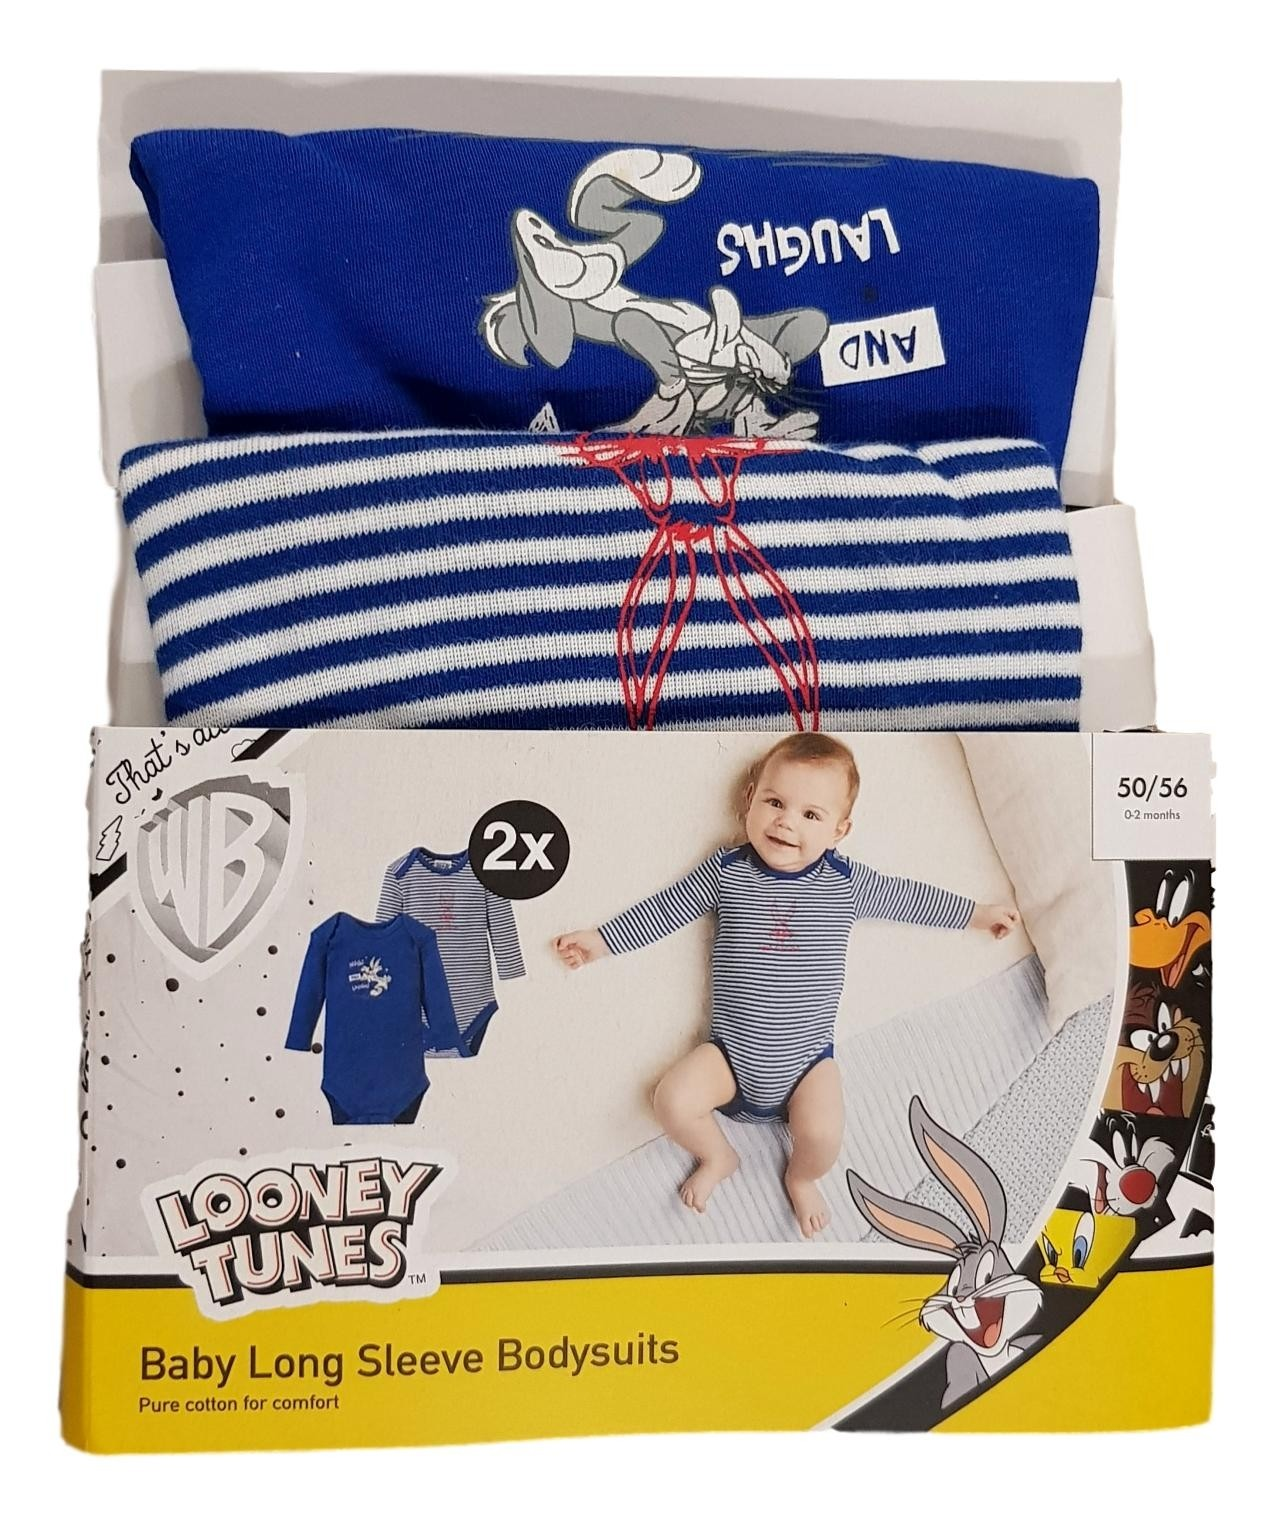 Looney Tunes 'Bugs Bunny' Royal Blue Baby Boys 2 Pack of Bodysuits PACK OF 6